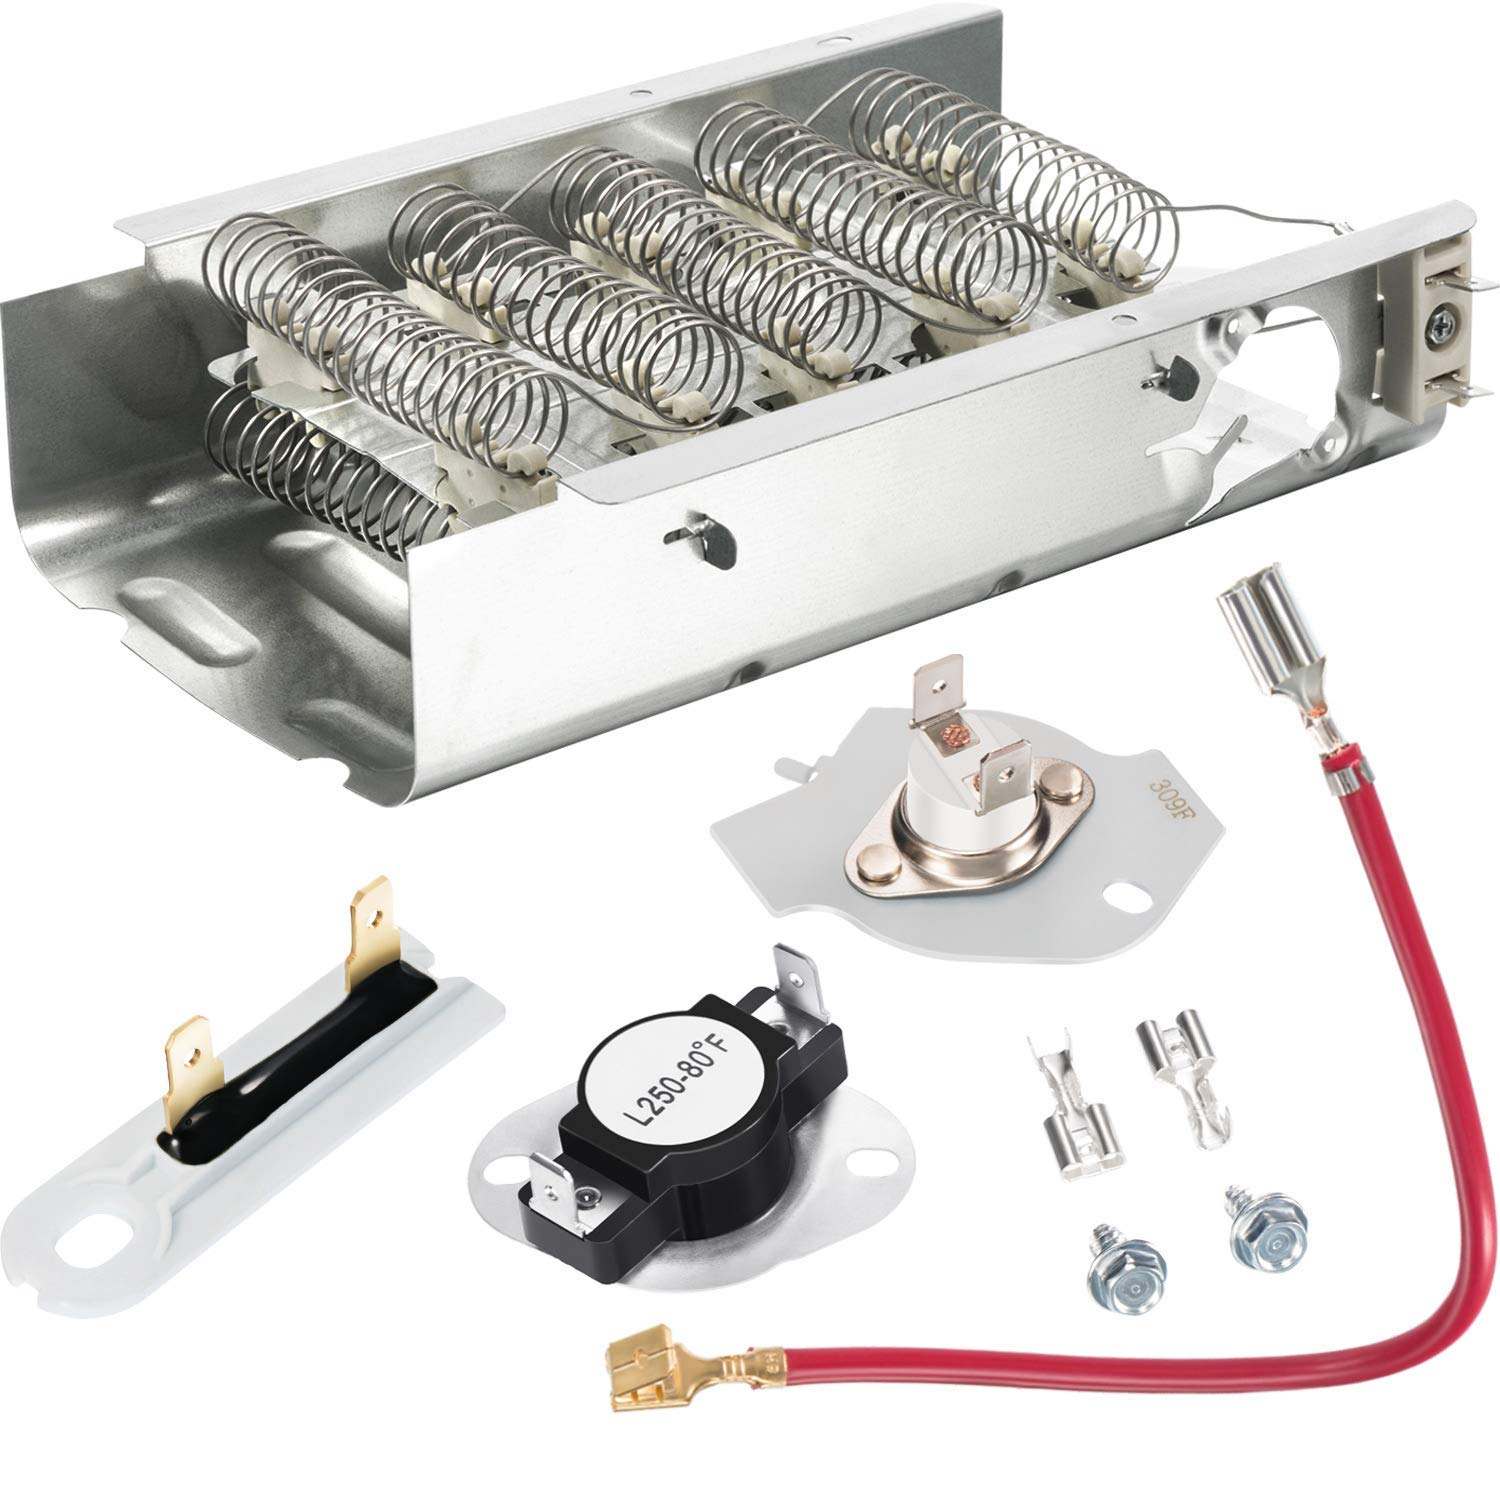 Dryer Replacement Kit Compatible with Kenmore Dryer, Including Heating Element 279838, Thermal Fuse 3392519 and Thermostat 279816